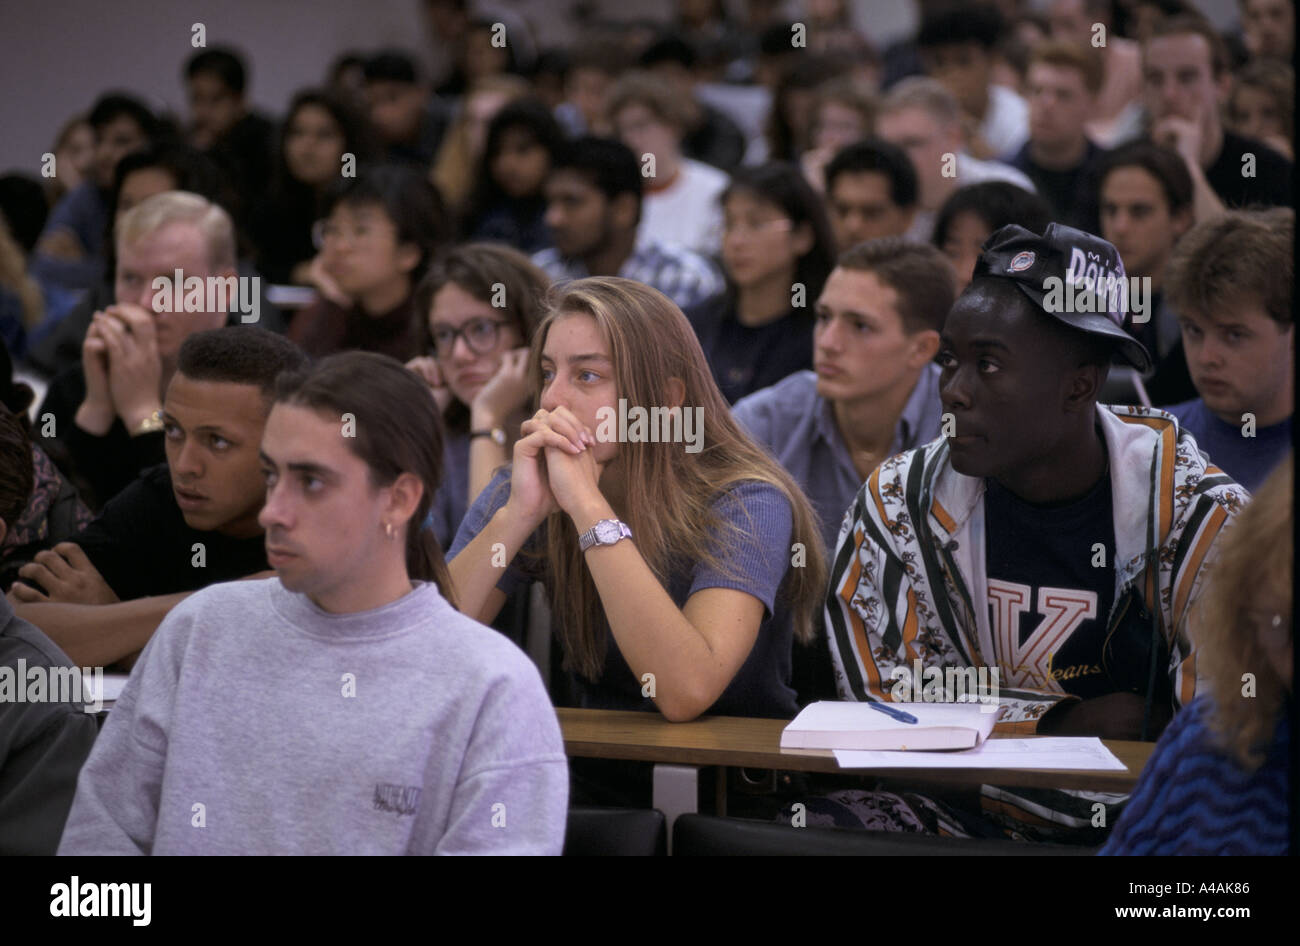 first year students at a lecture Luton university - now Bedfordshire University - Stock Image